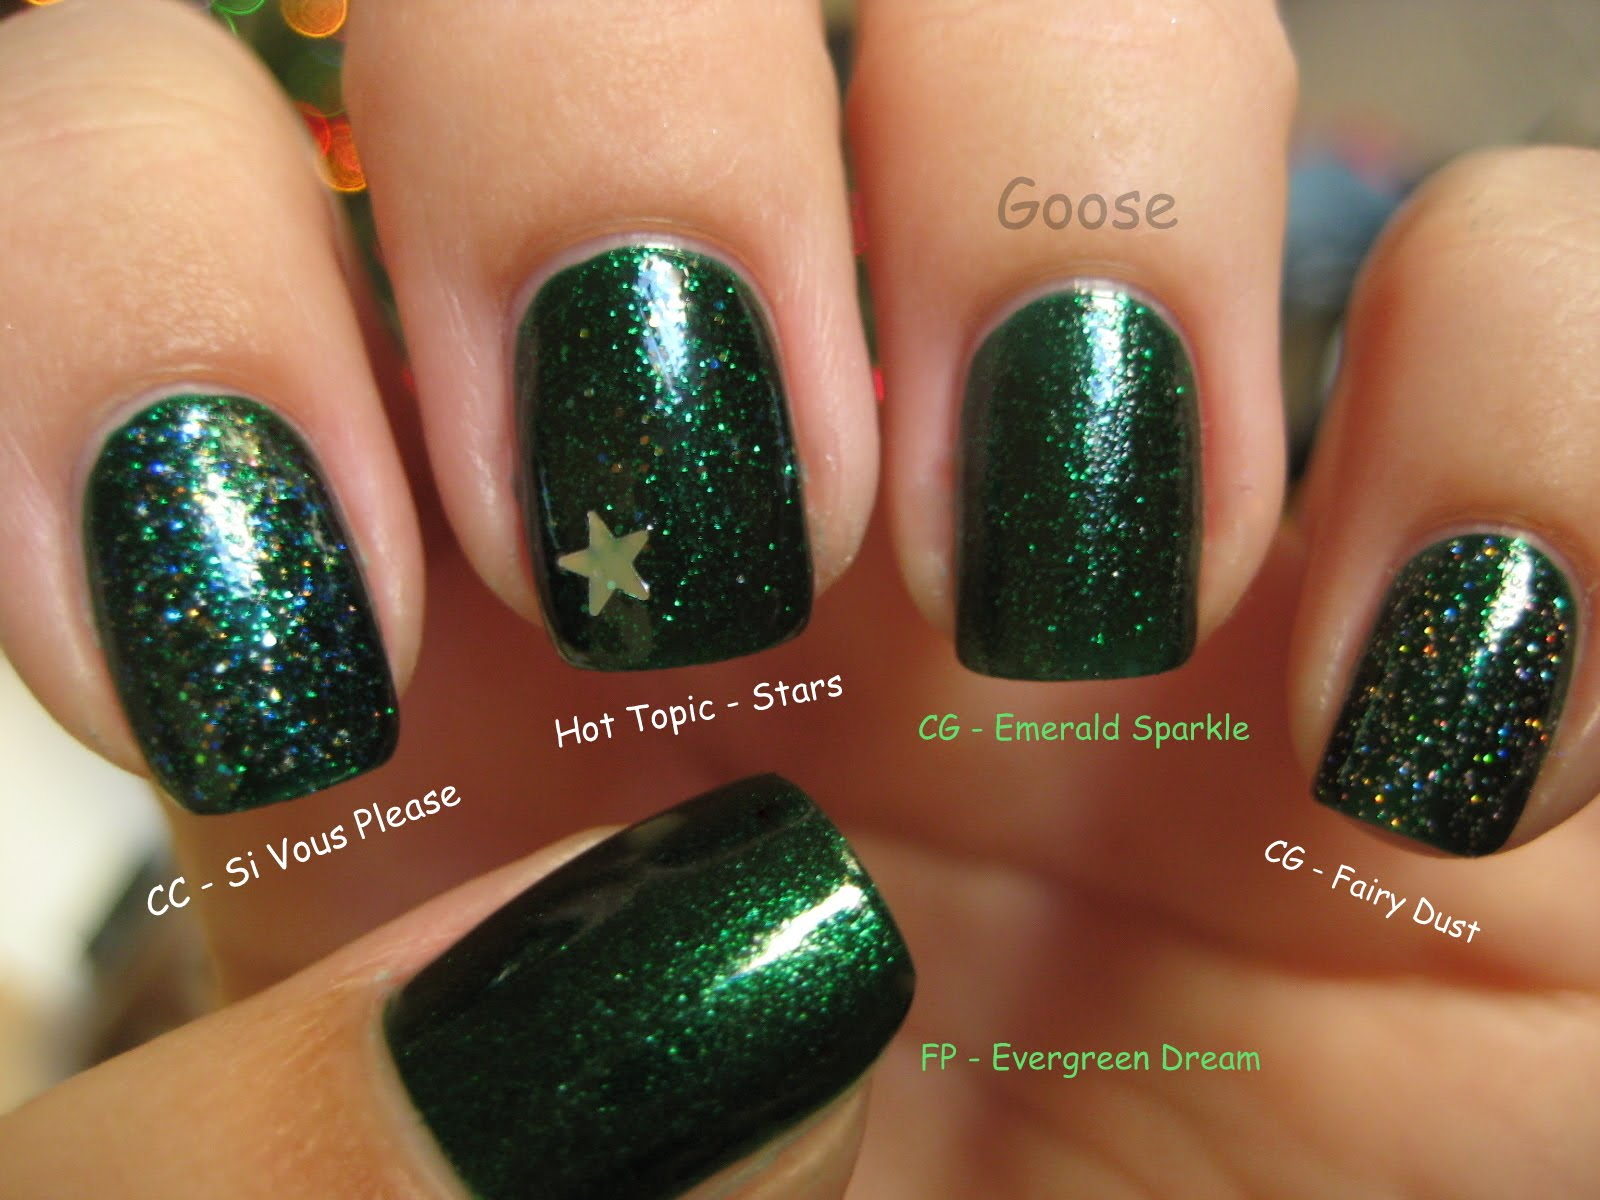 Goose\'s Glitter: Emerald Sparkle and Christmas Tree Mani